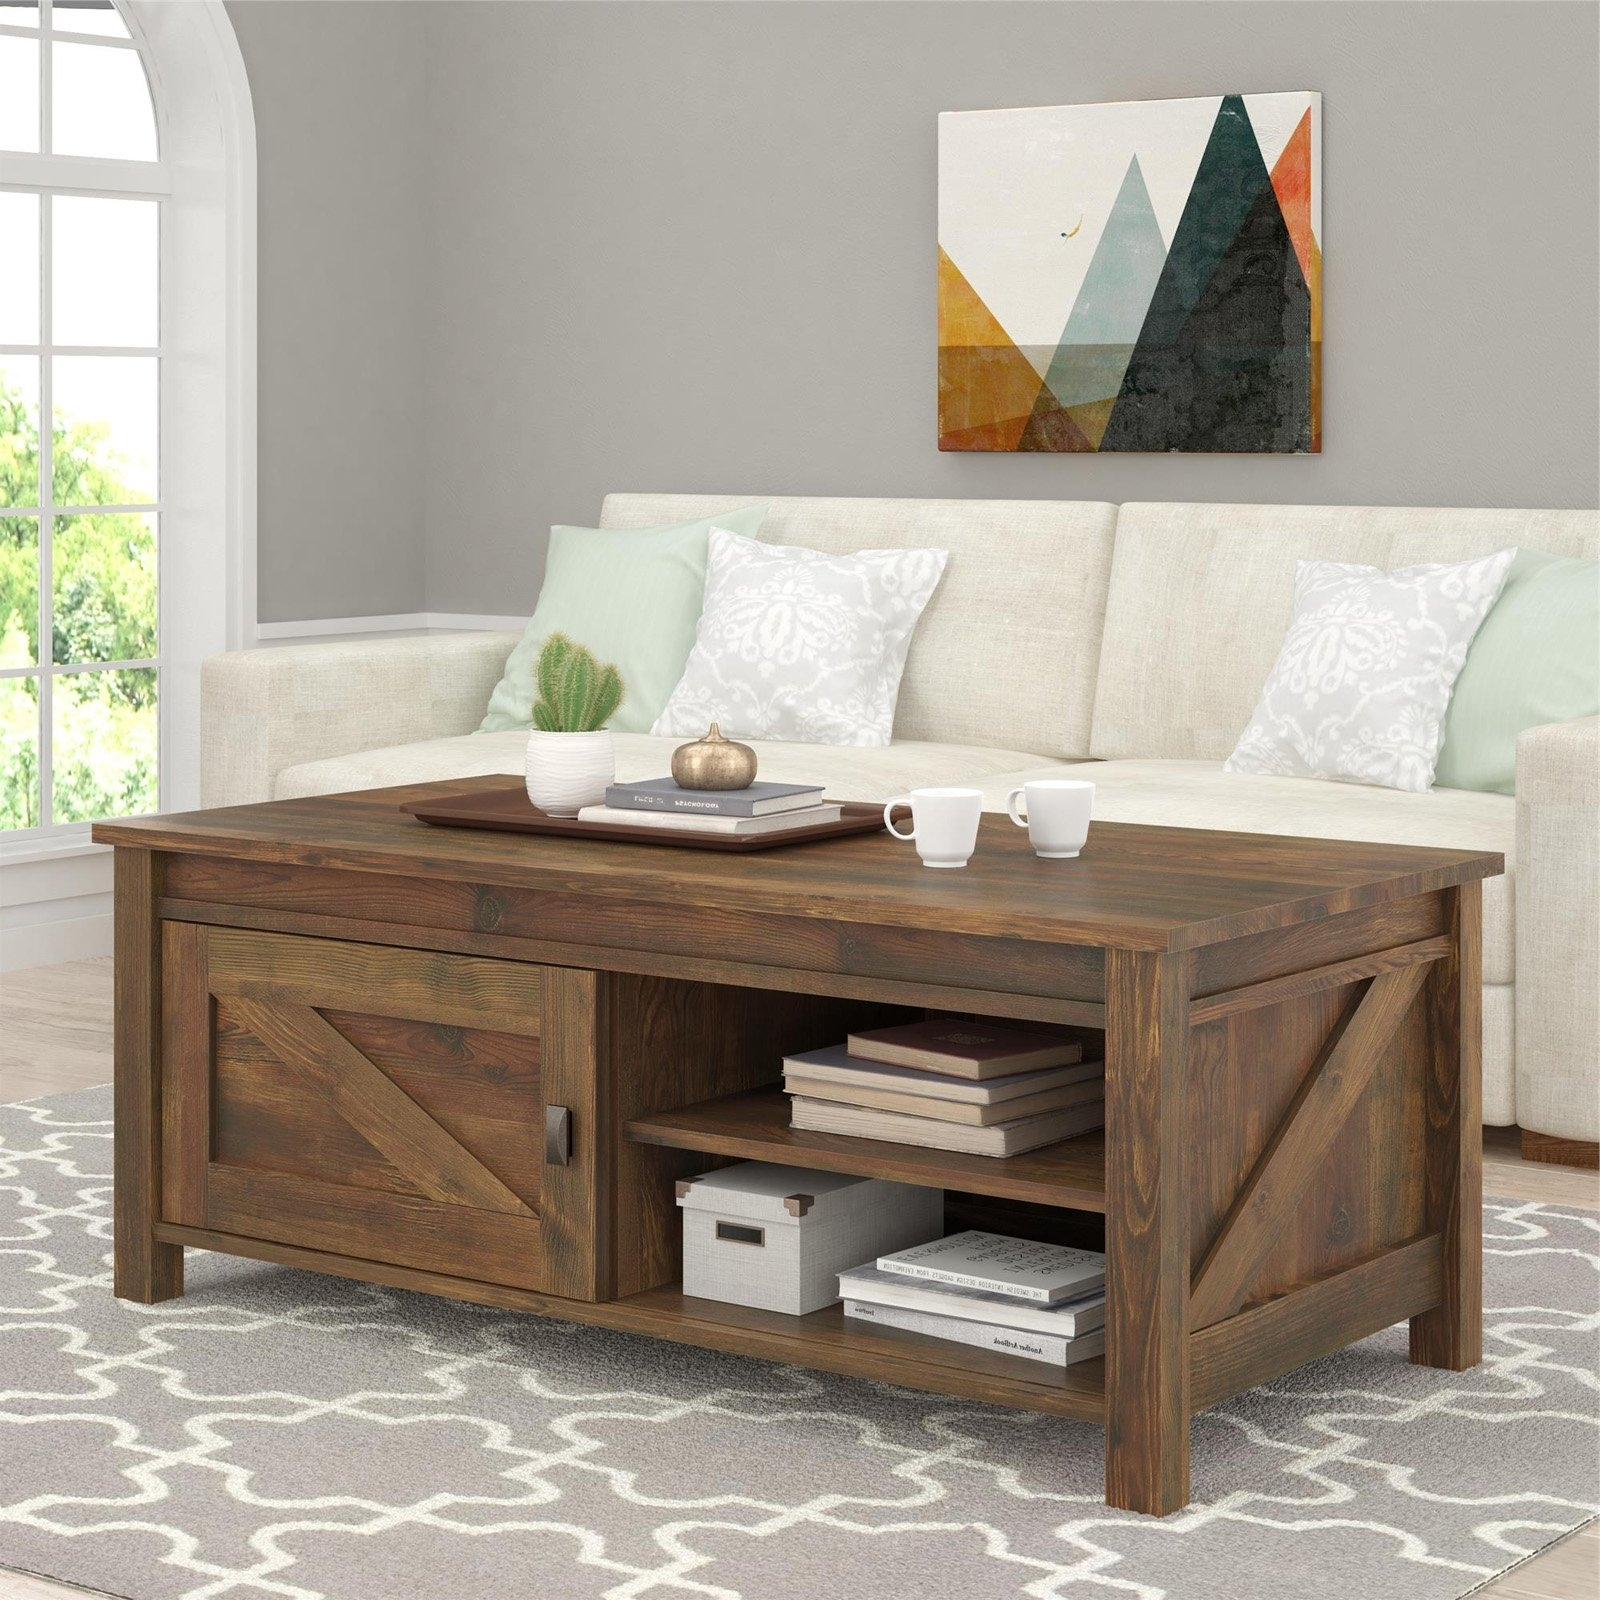 Altra Farmington Coffee Table – Century Barn Pine – Walmart Intended For Fashionable Element Coffee Tables (View 19 of 20)